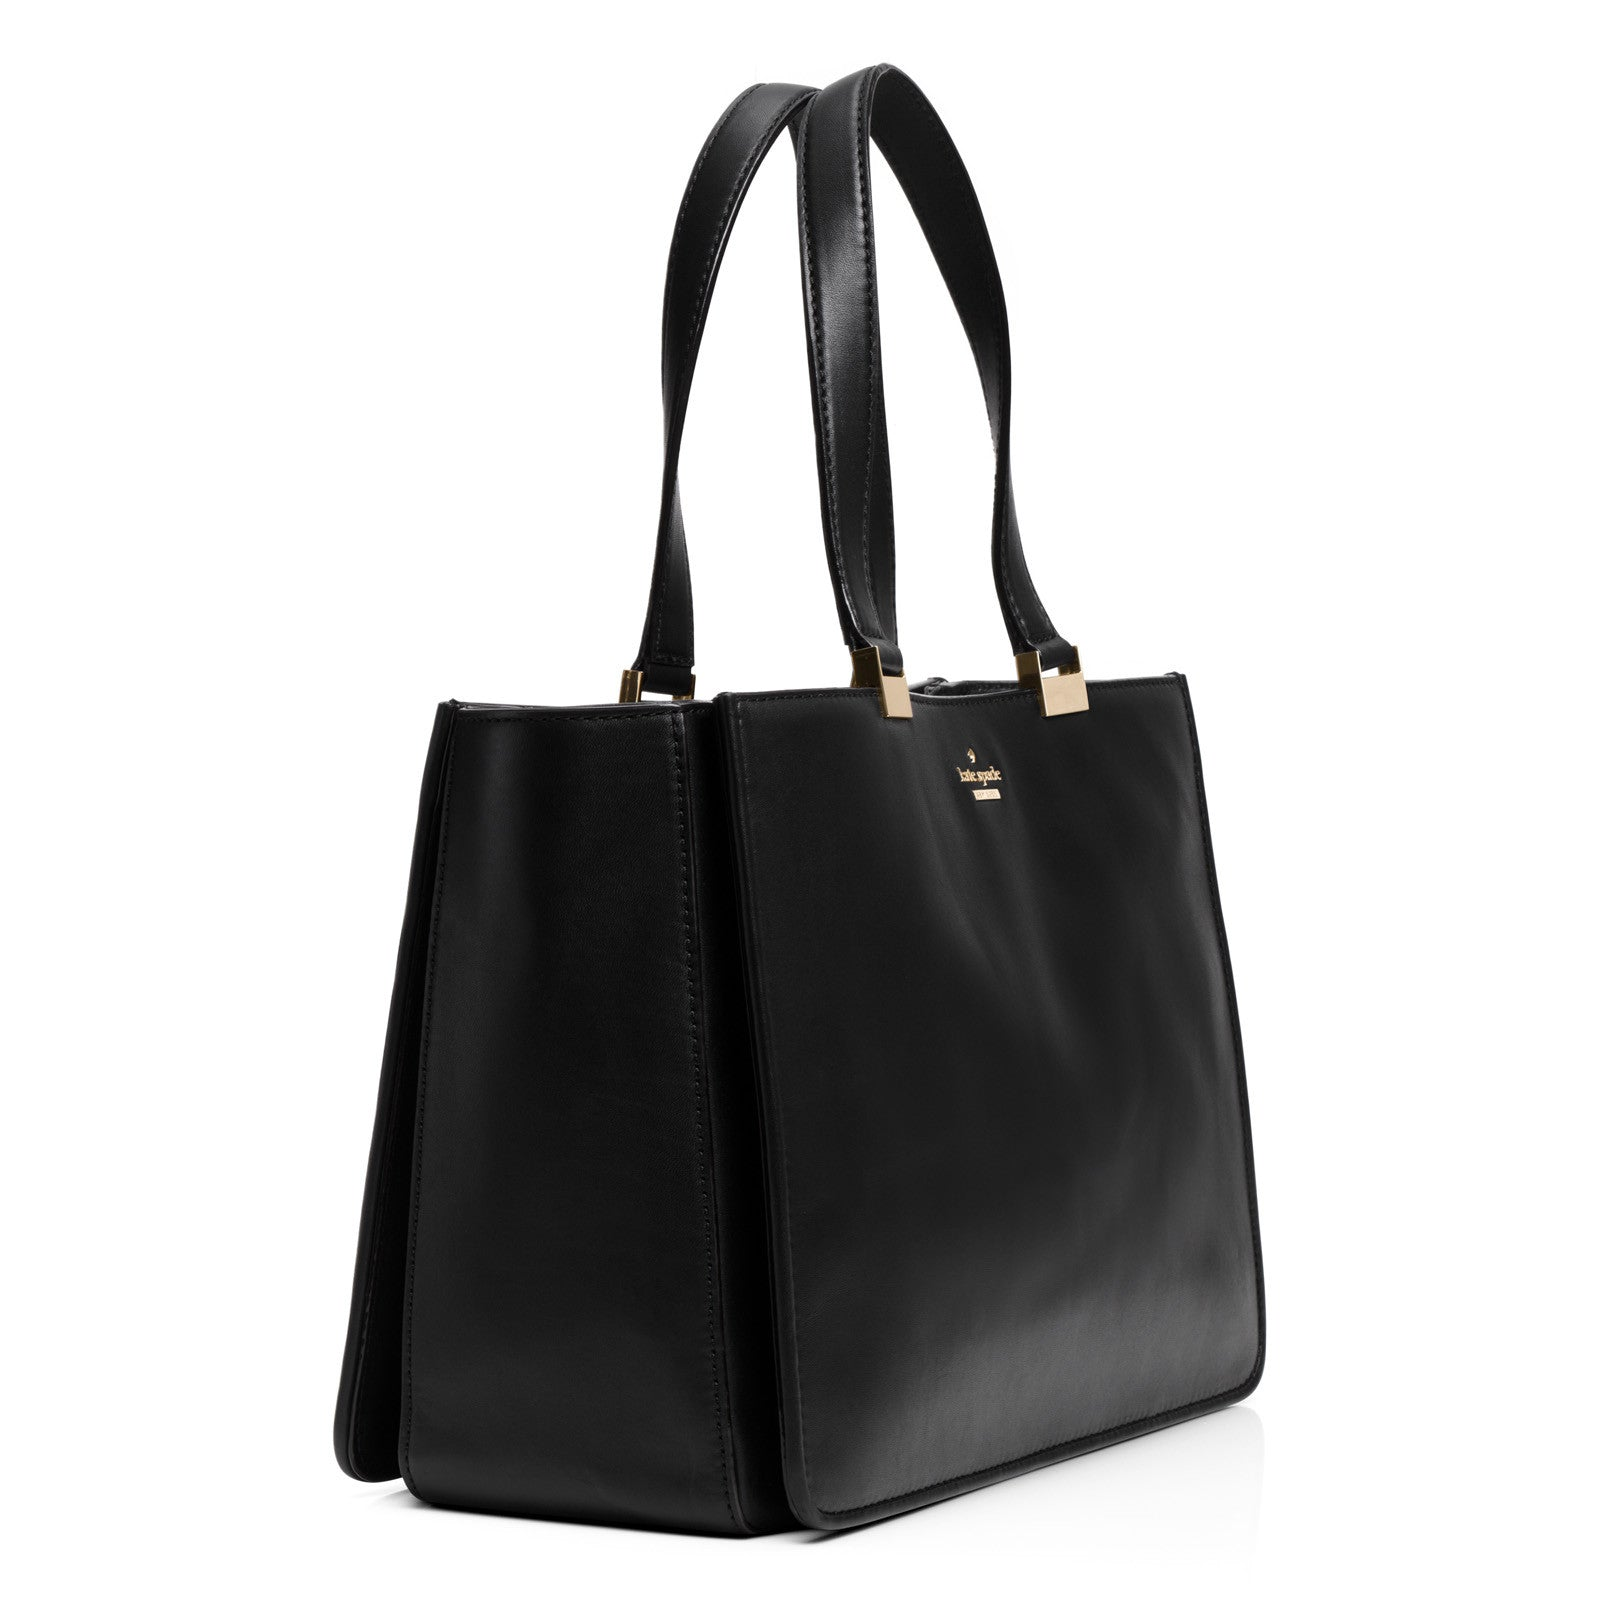 Frieda Handbag with Phone Charger: Black Tote